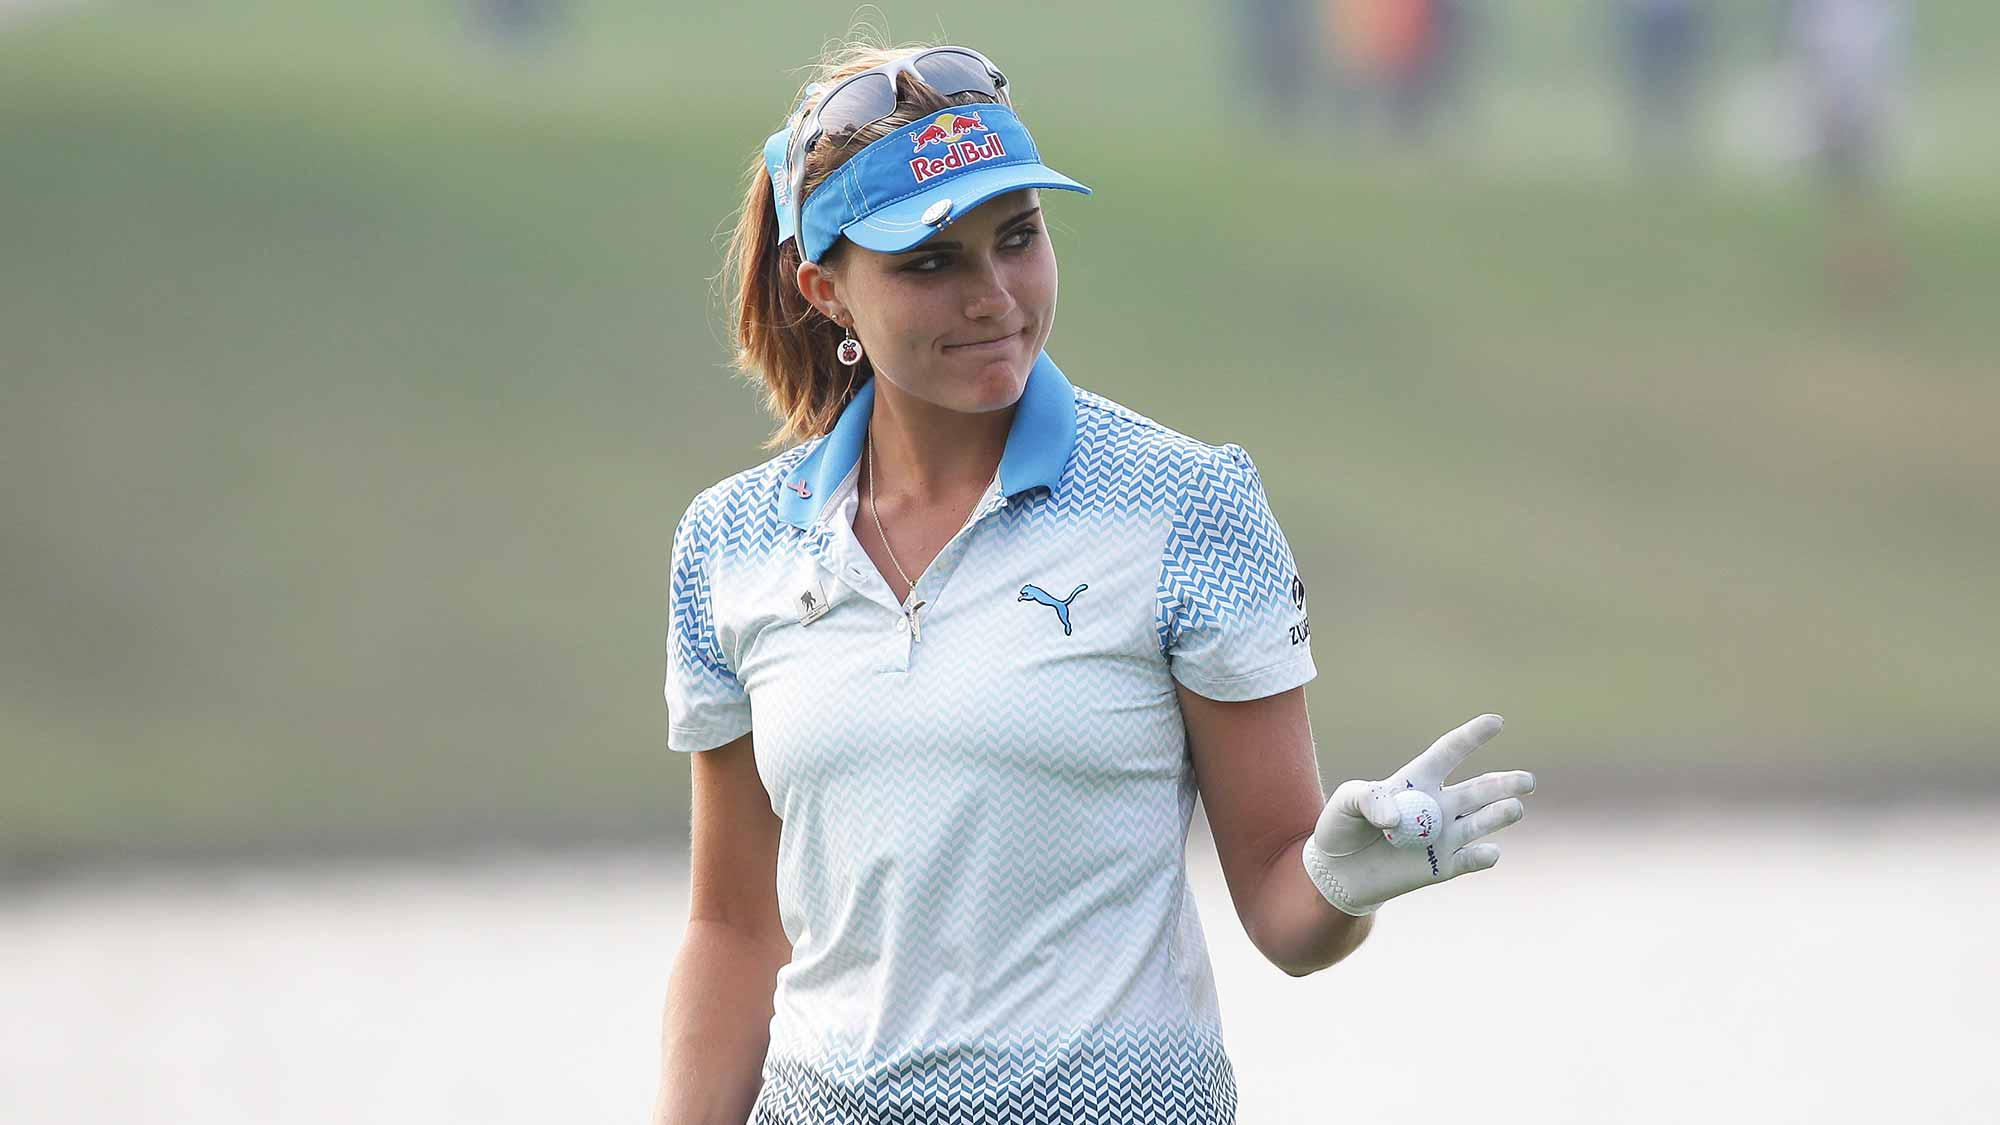 Lexi Thompson of United States reacts after a putt on the 18th green during round four of the LPGA KEB Hana Bank